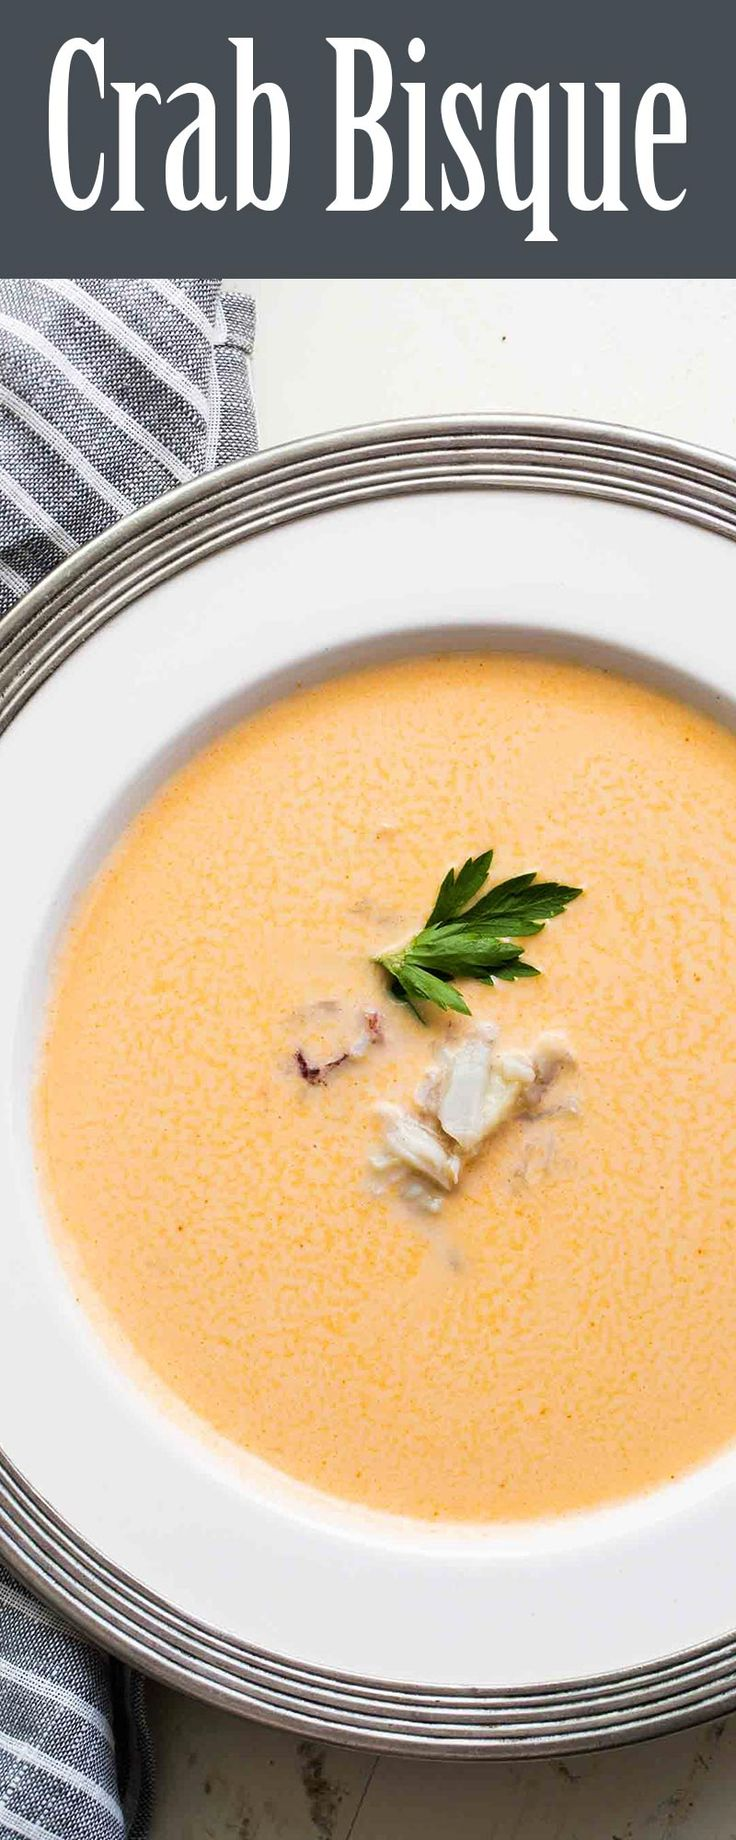 Delicious, rich and creamy crab bisque! Made with fresh cracked Dungeness crab meat, and stock made from the crab shells.